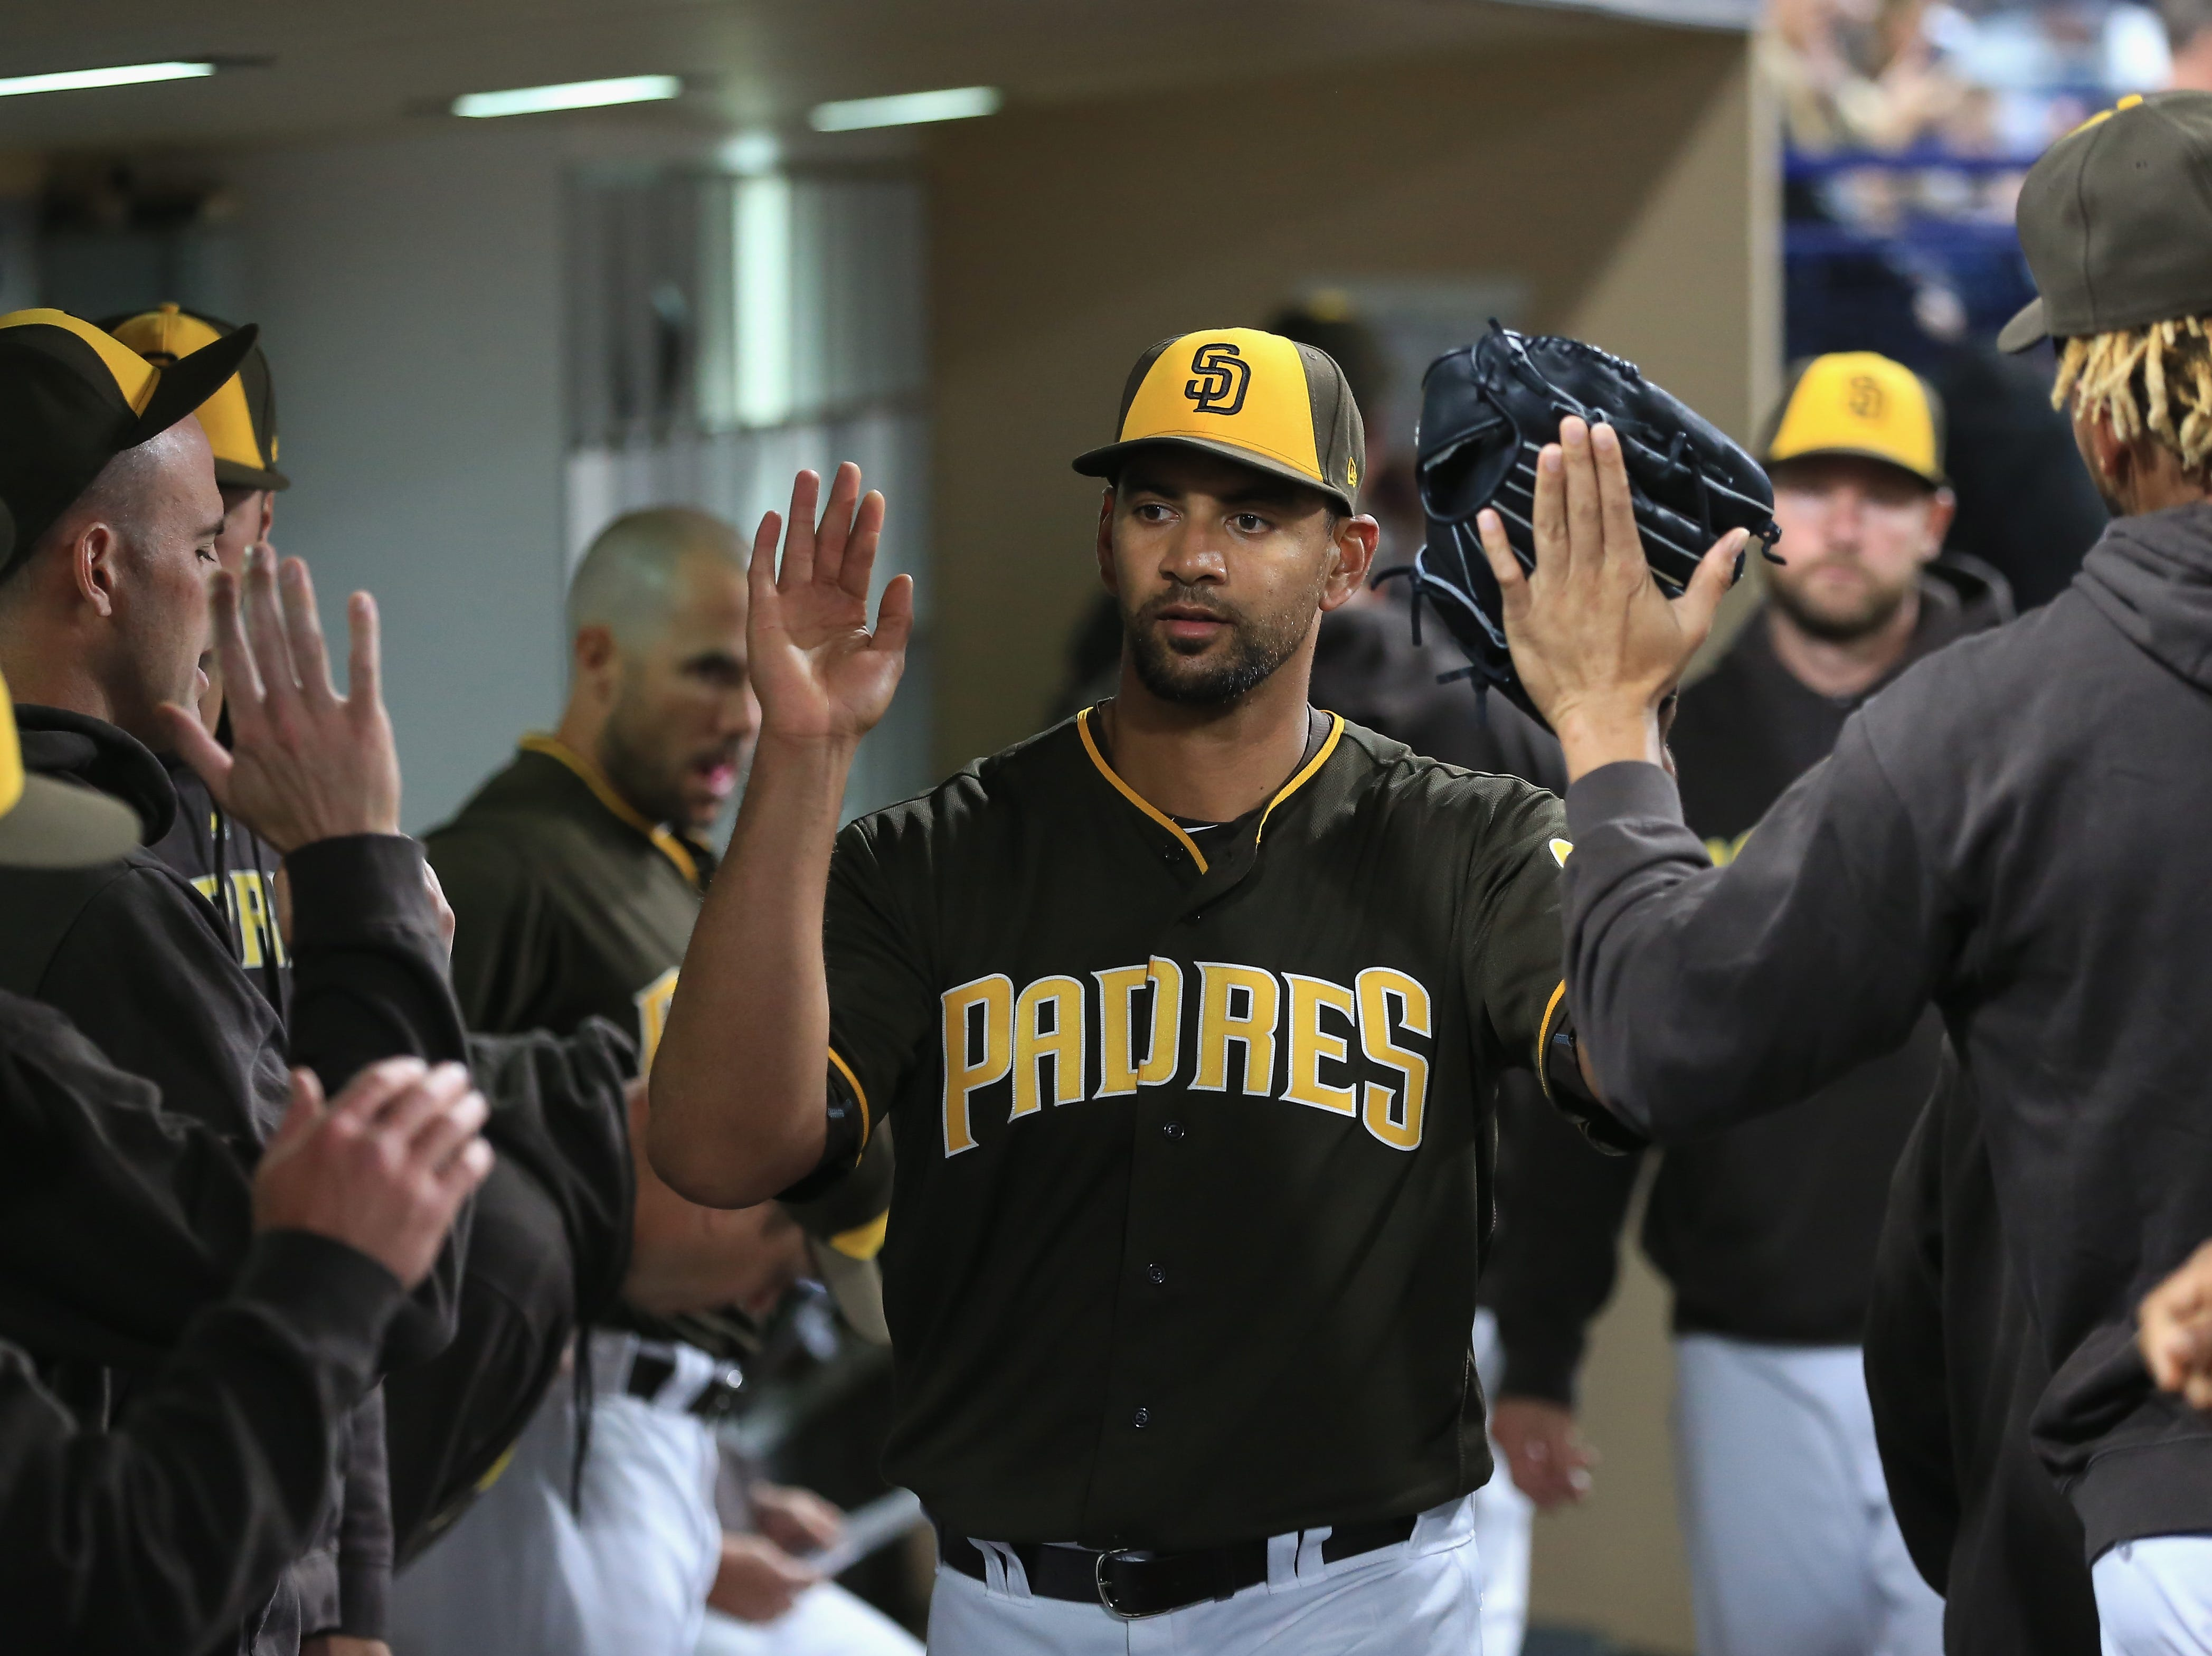 Tyson Ross of the San Diego Padres is congratulated in the dugout after being taken out of the game during the seventh inning of a game against the San Francisco Giants on April 13, 2018 in San Diego, California.